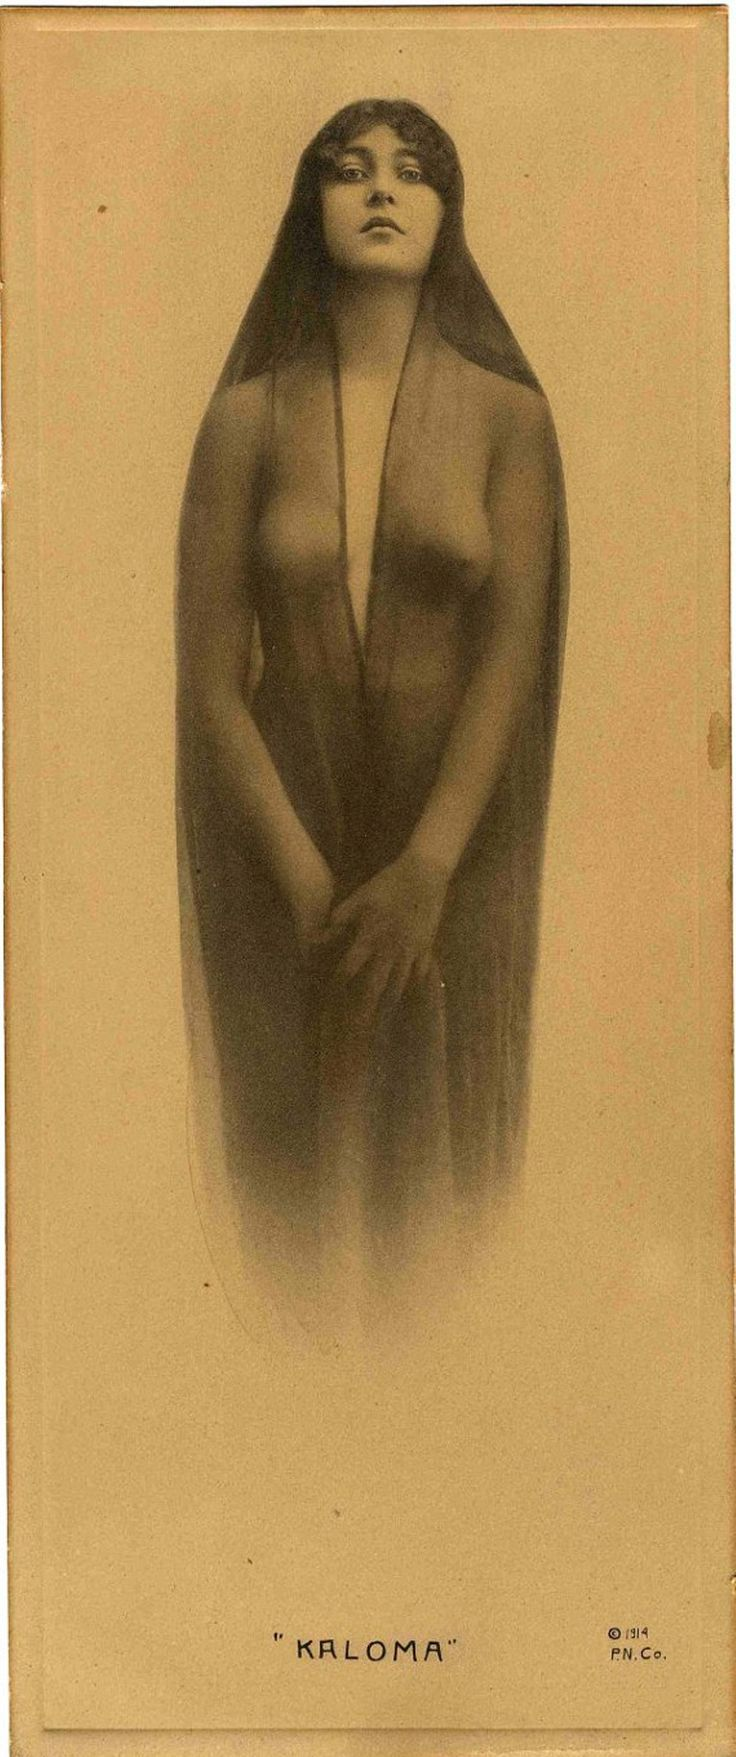 A vagabond and speculated prostitute of the Wild West, nothing Josephine Earp ever did was seemingly adventurous enough even for herself. She thrived off the change of environments and had a certain mystique about her that followed her around like too much perfume. But that's what drew people to her